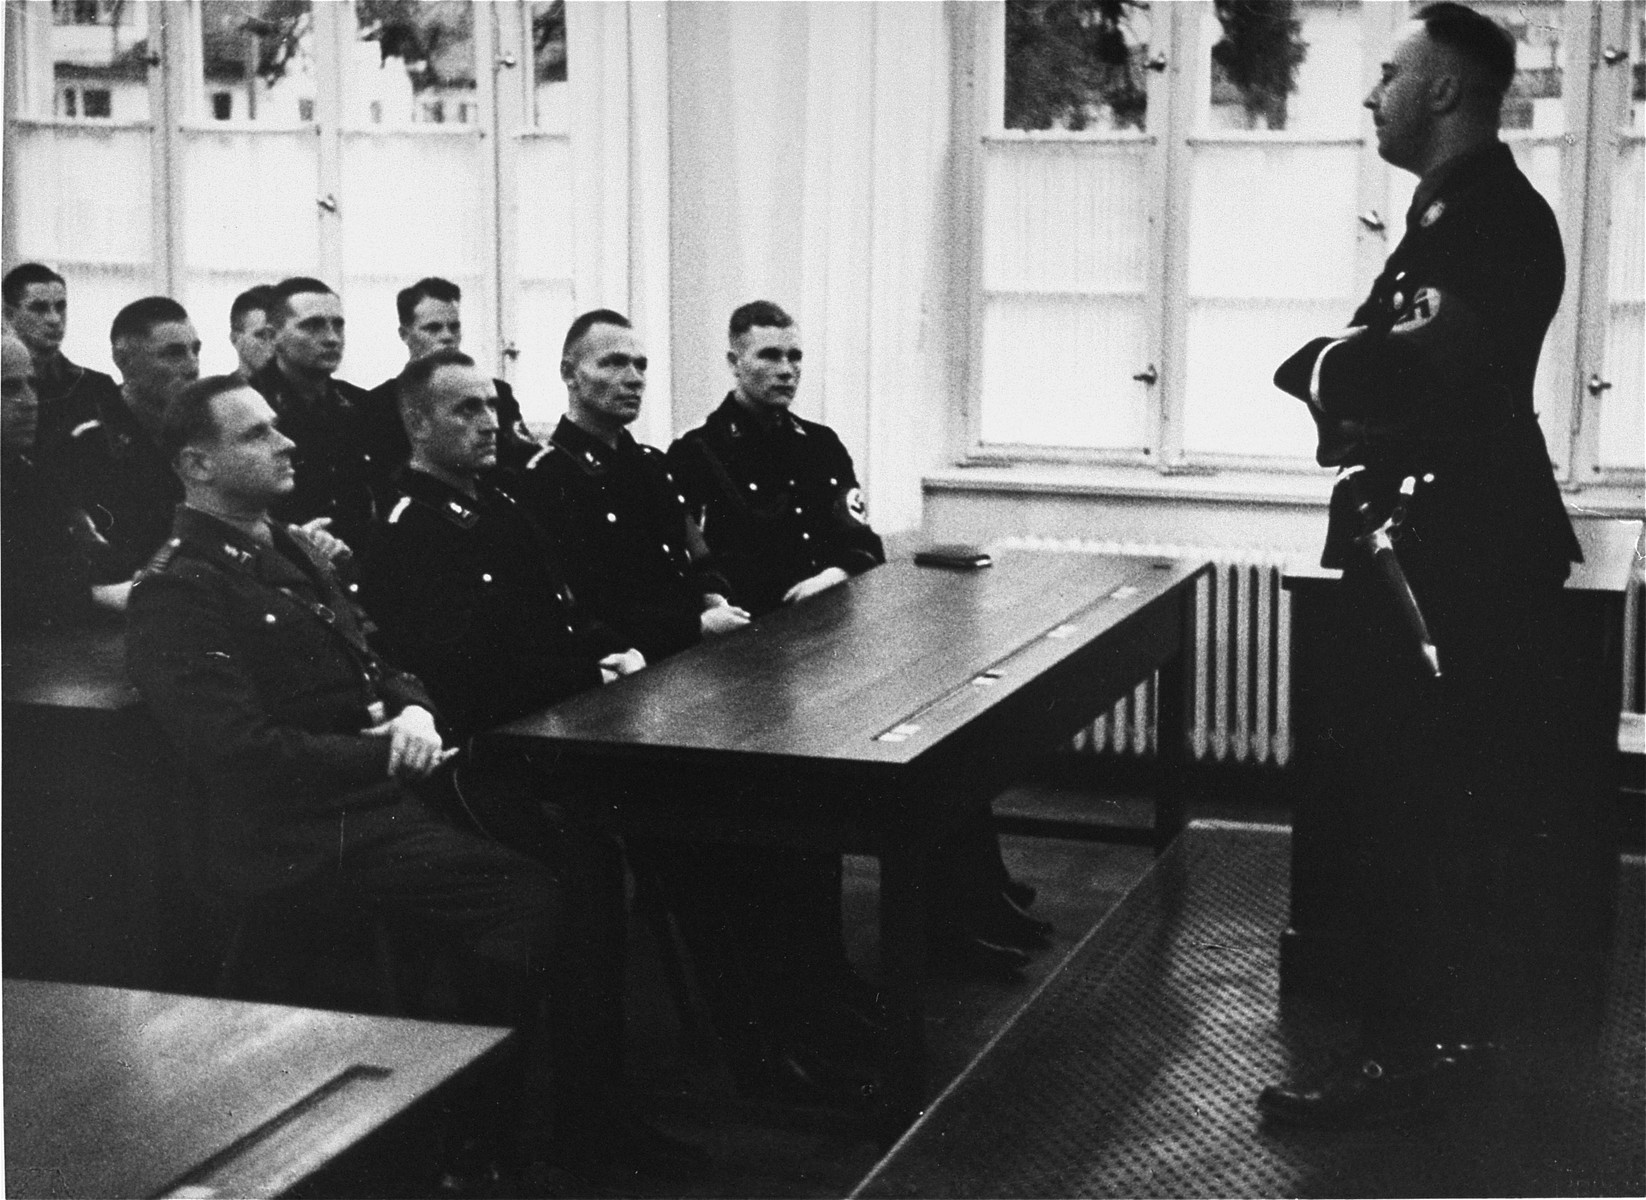 Heinrich Himmler lectures SS officers.  This image is from an album of SS photographs.